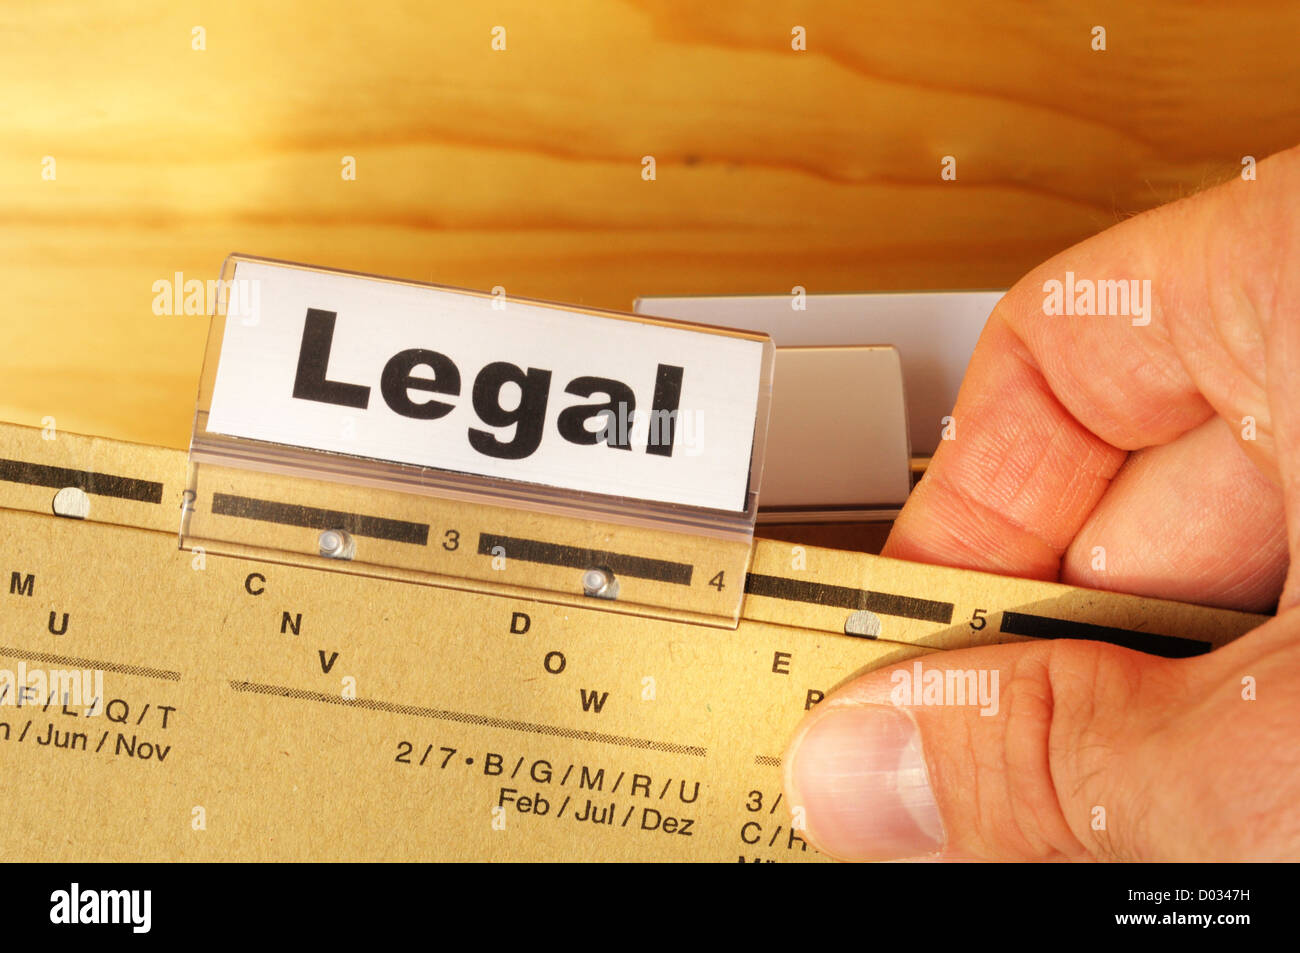 legal word on folder index showing law court or justice concept - Stock Image